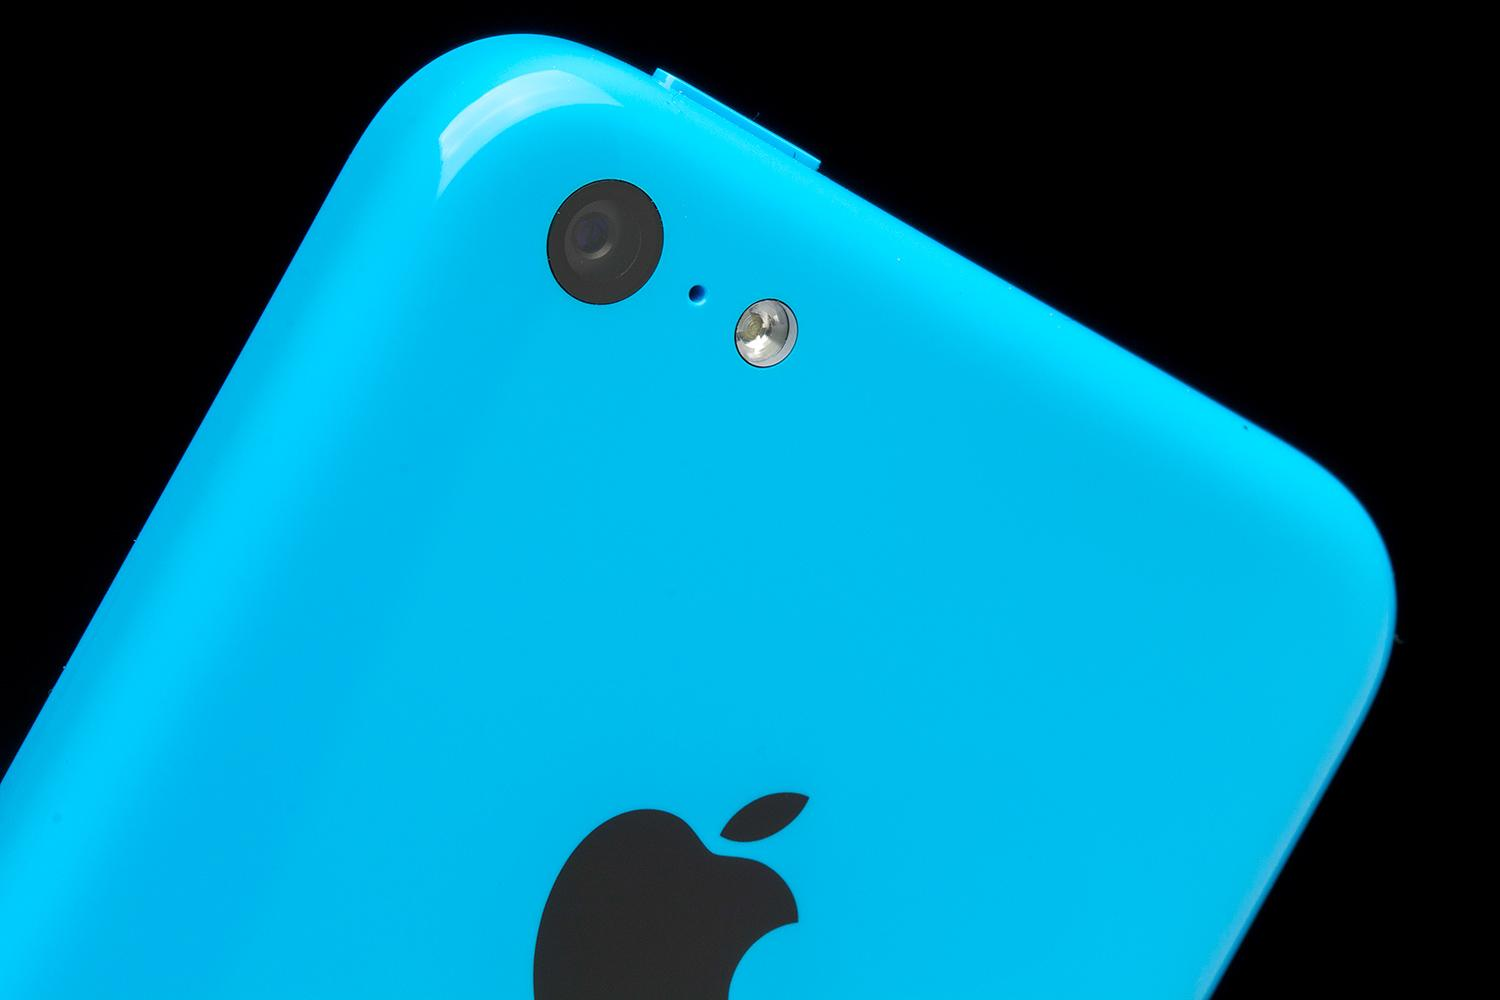 iphone 5c camera specs apple files patent for dual tech could lead to 14641